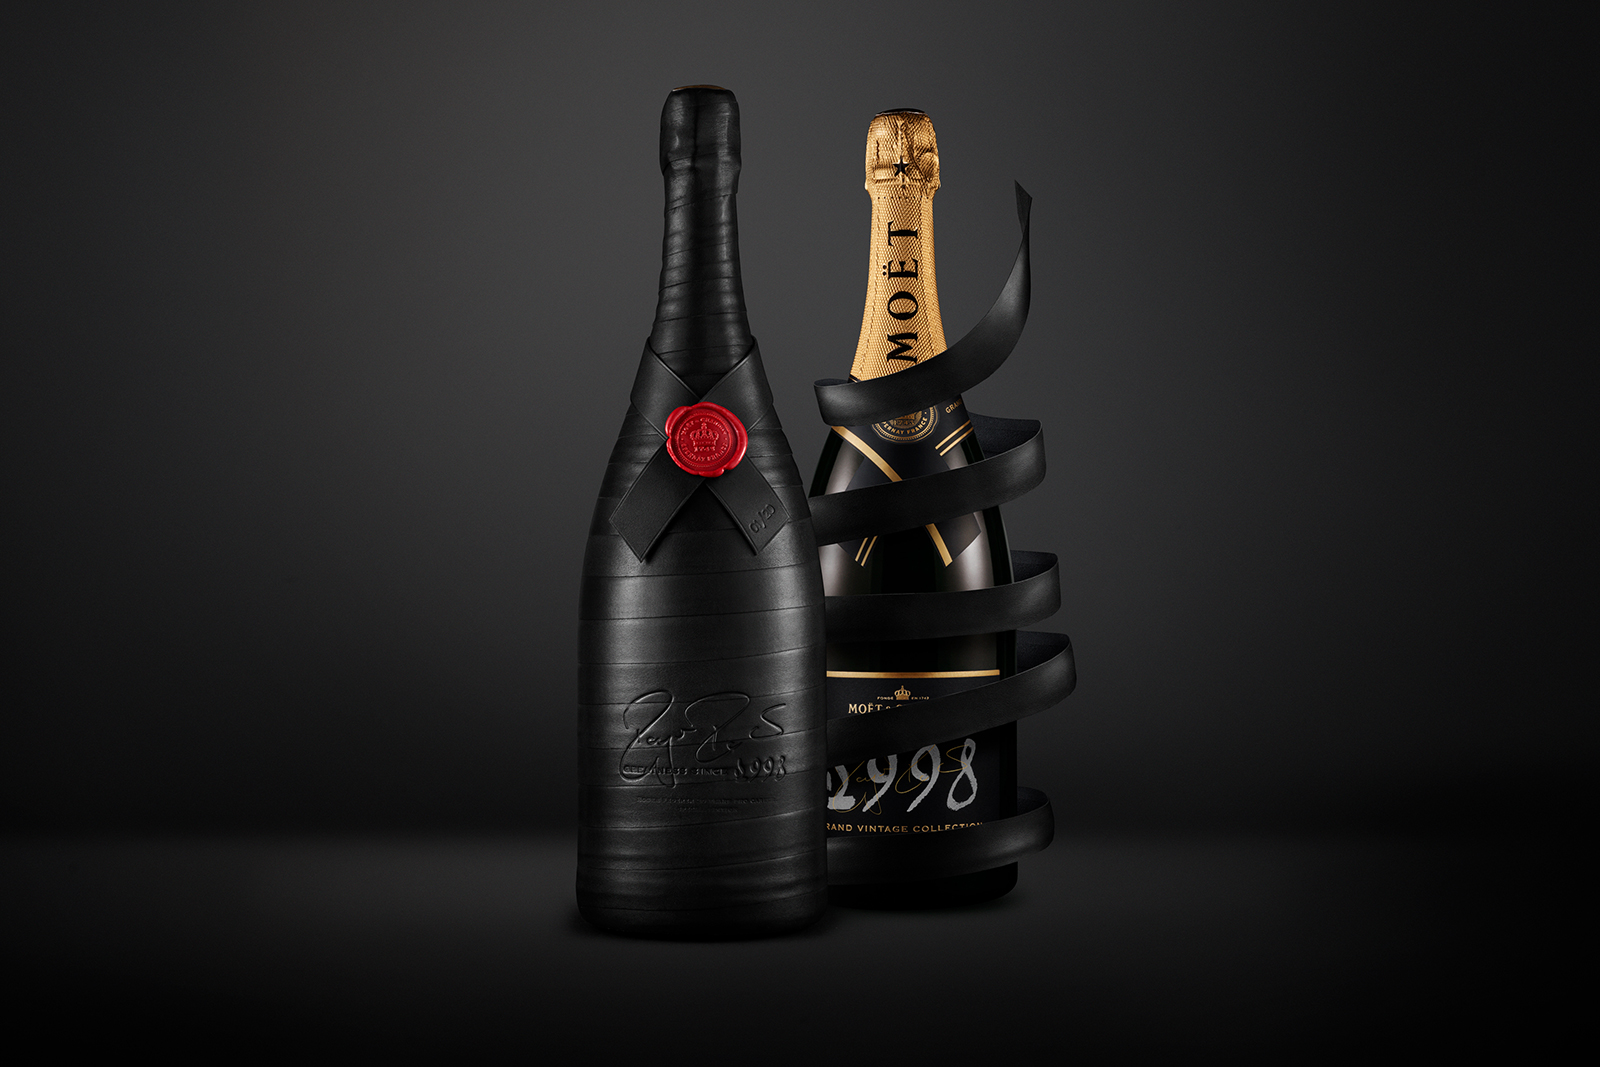 Moët & Chandon GREATNESS SINCE 1998 Collection roger federer exclusive limited edition champagne